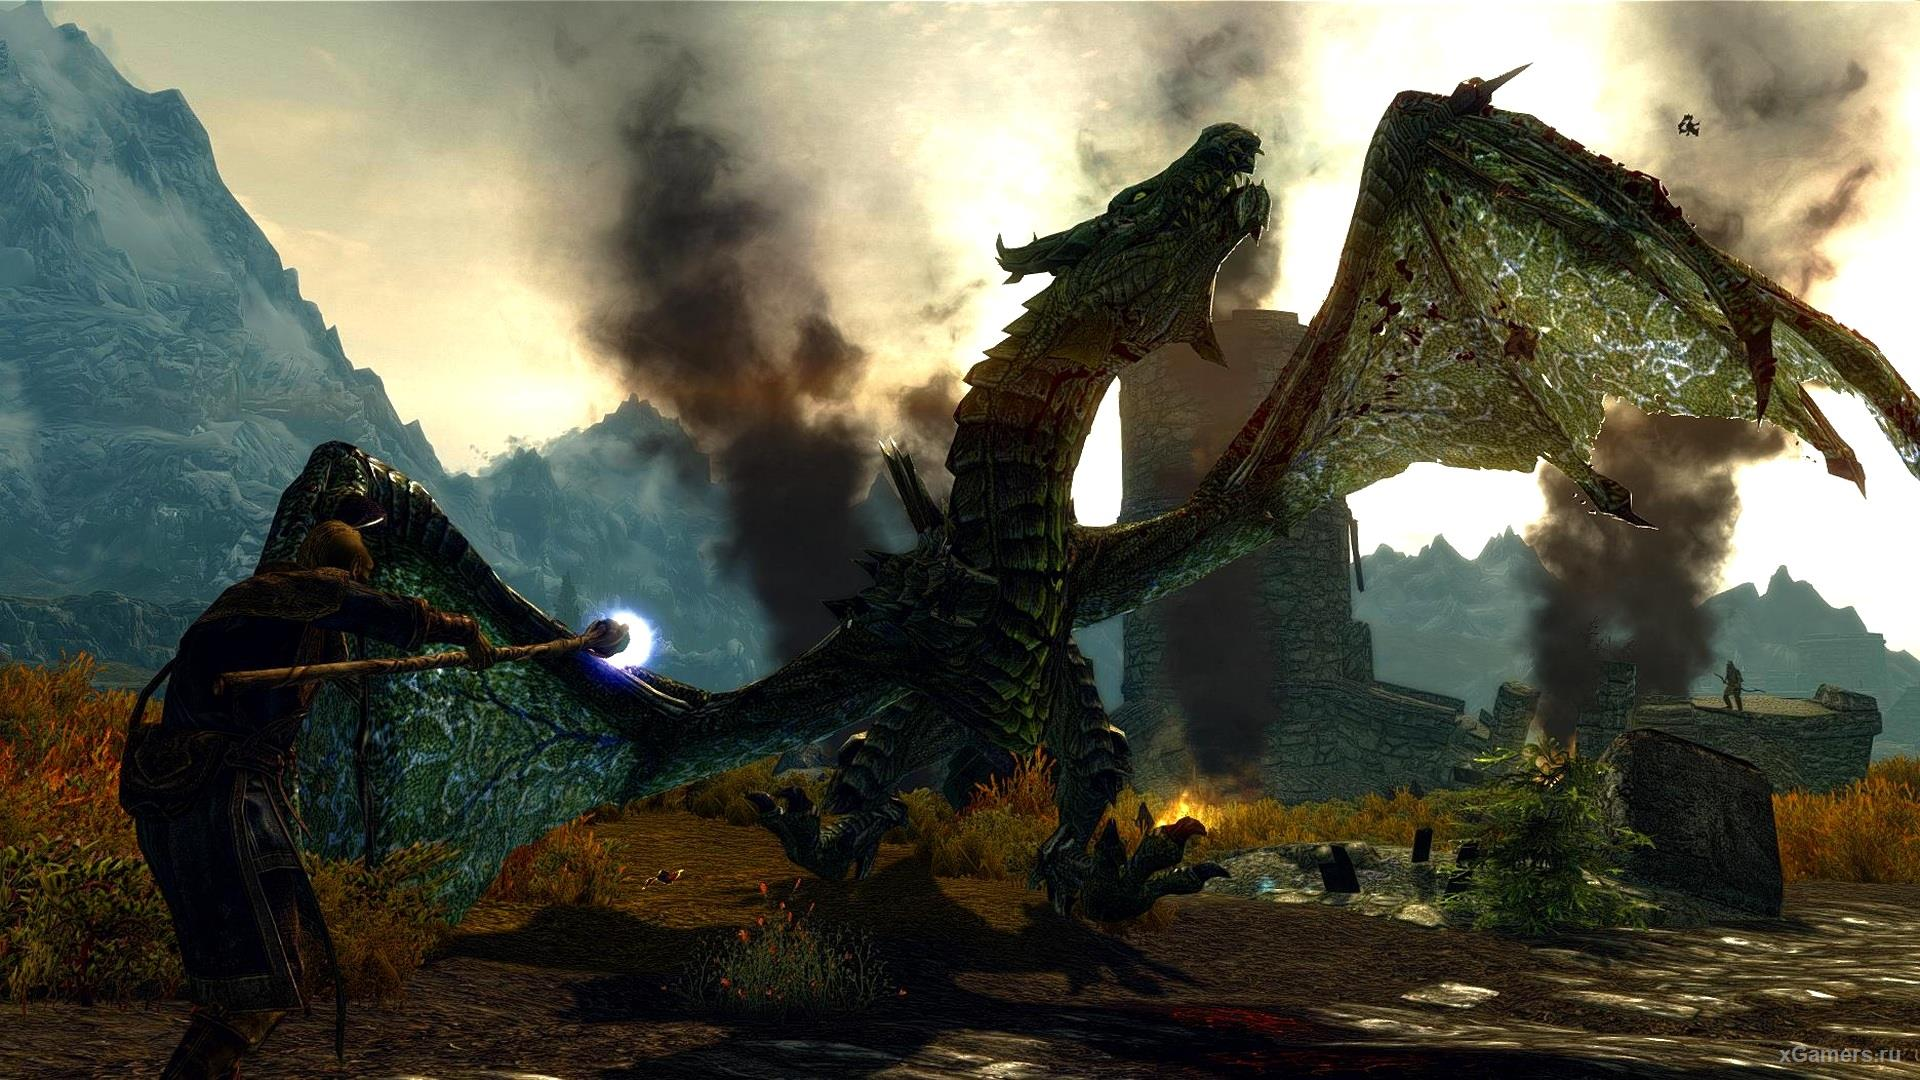 Skyrim fight with dragons in Game